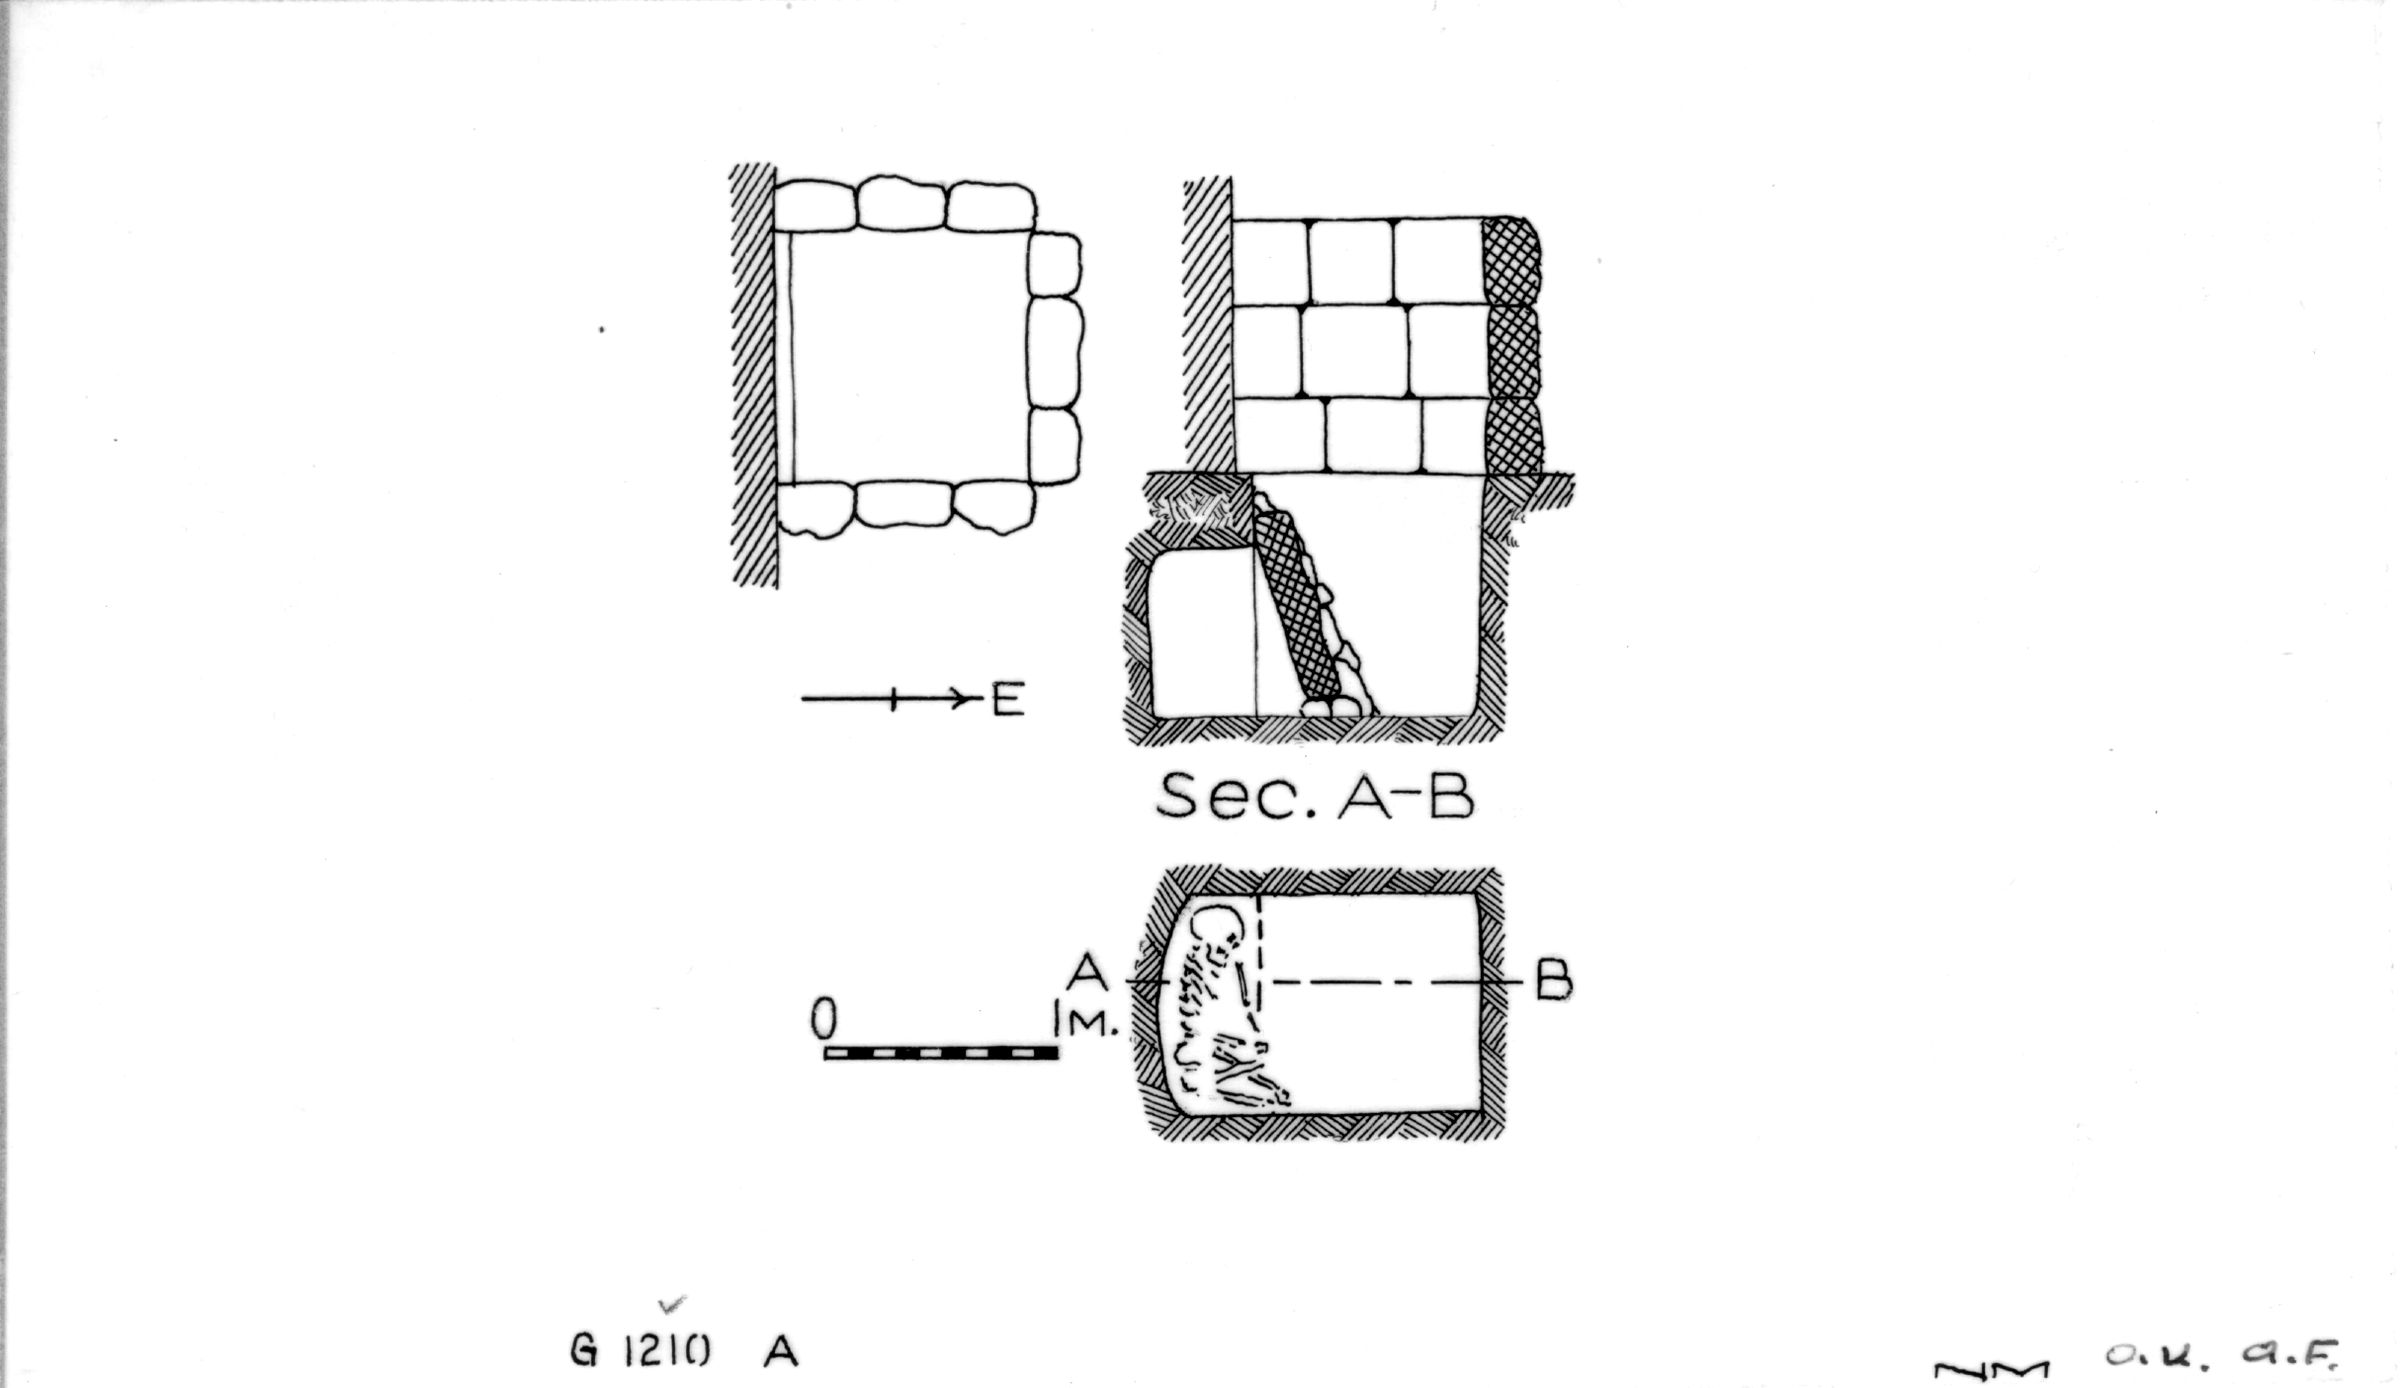 Maps and plans: G 1210, Shaft A